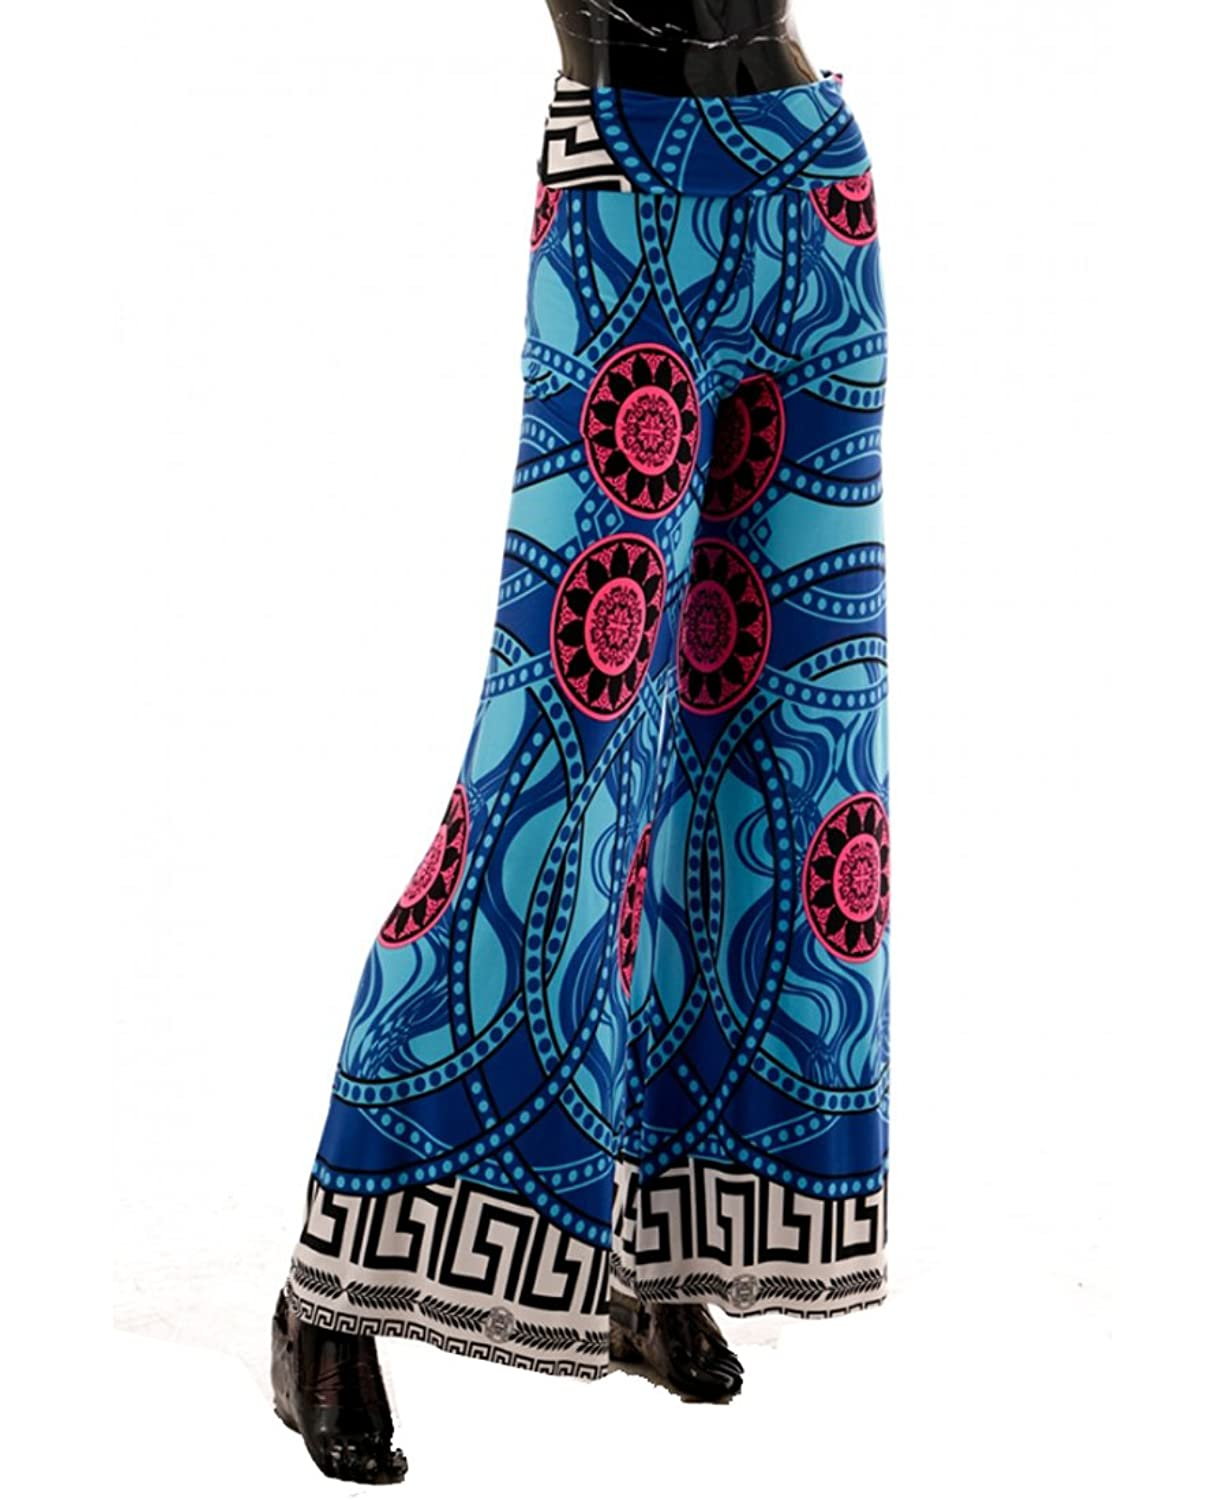 Palazzo Pants High Waisted Pants-Gift For Women Clothing Pants Lovers!